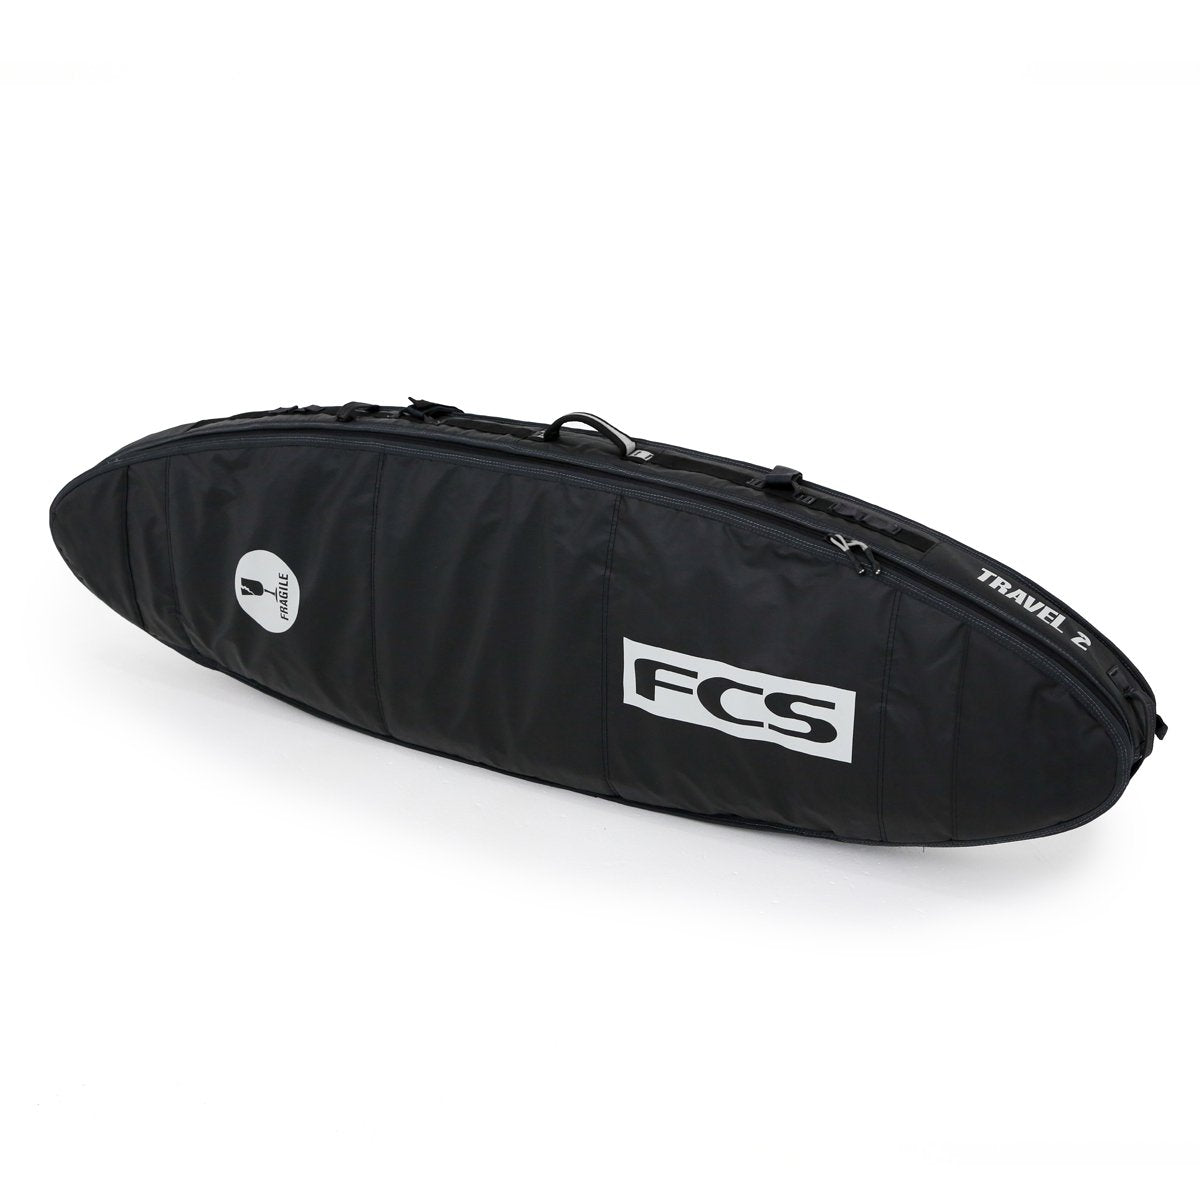 6'7 FCS Travel 2 All Purpose Surfboard Cover